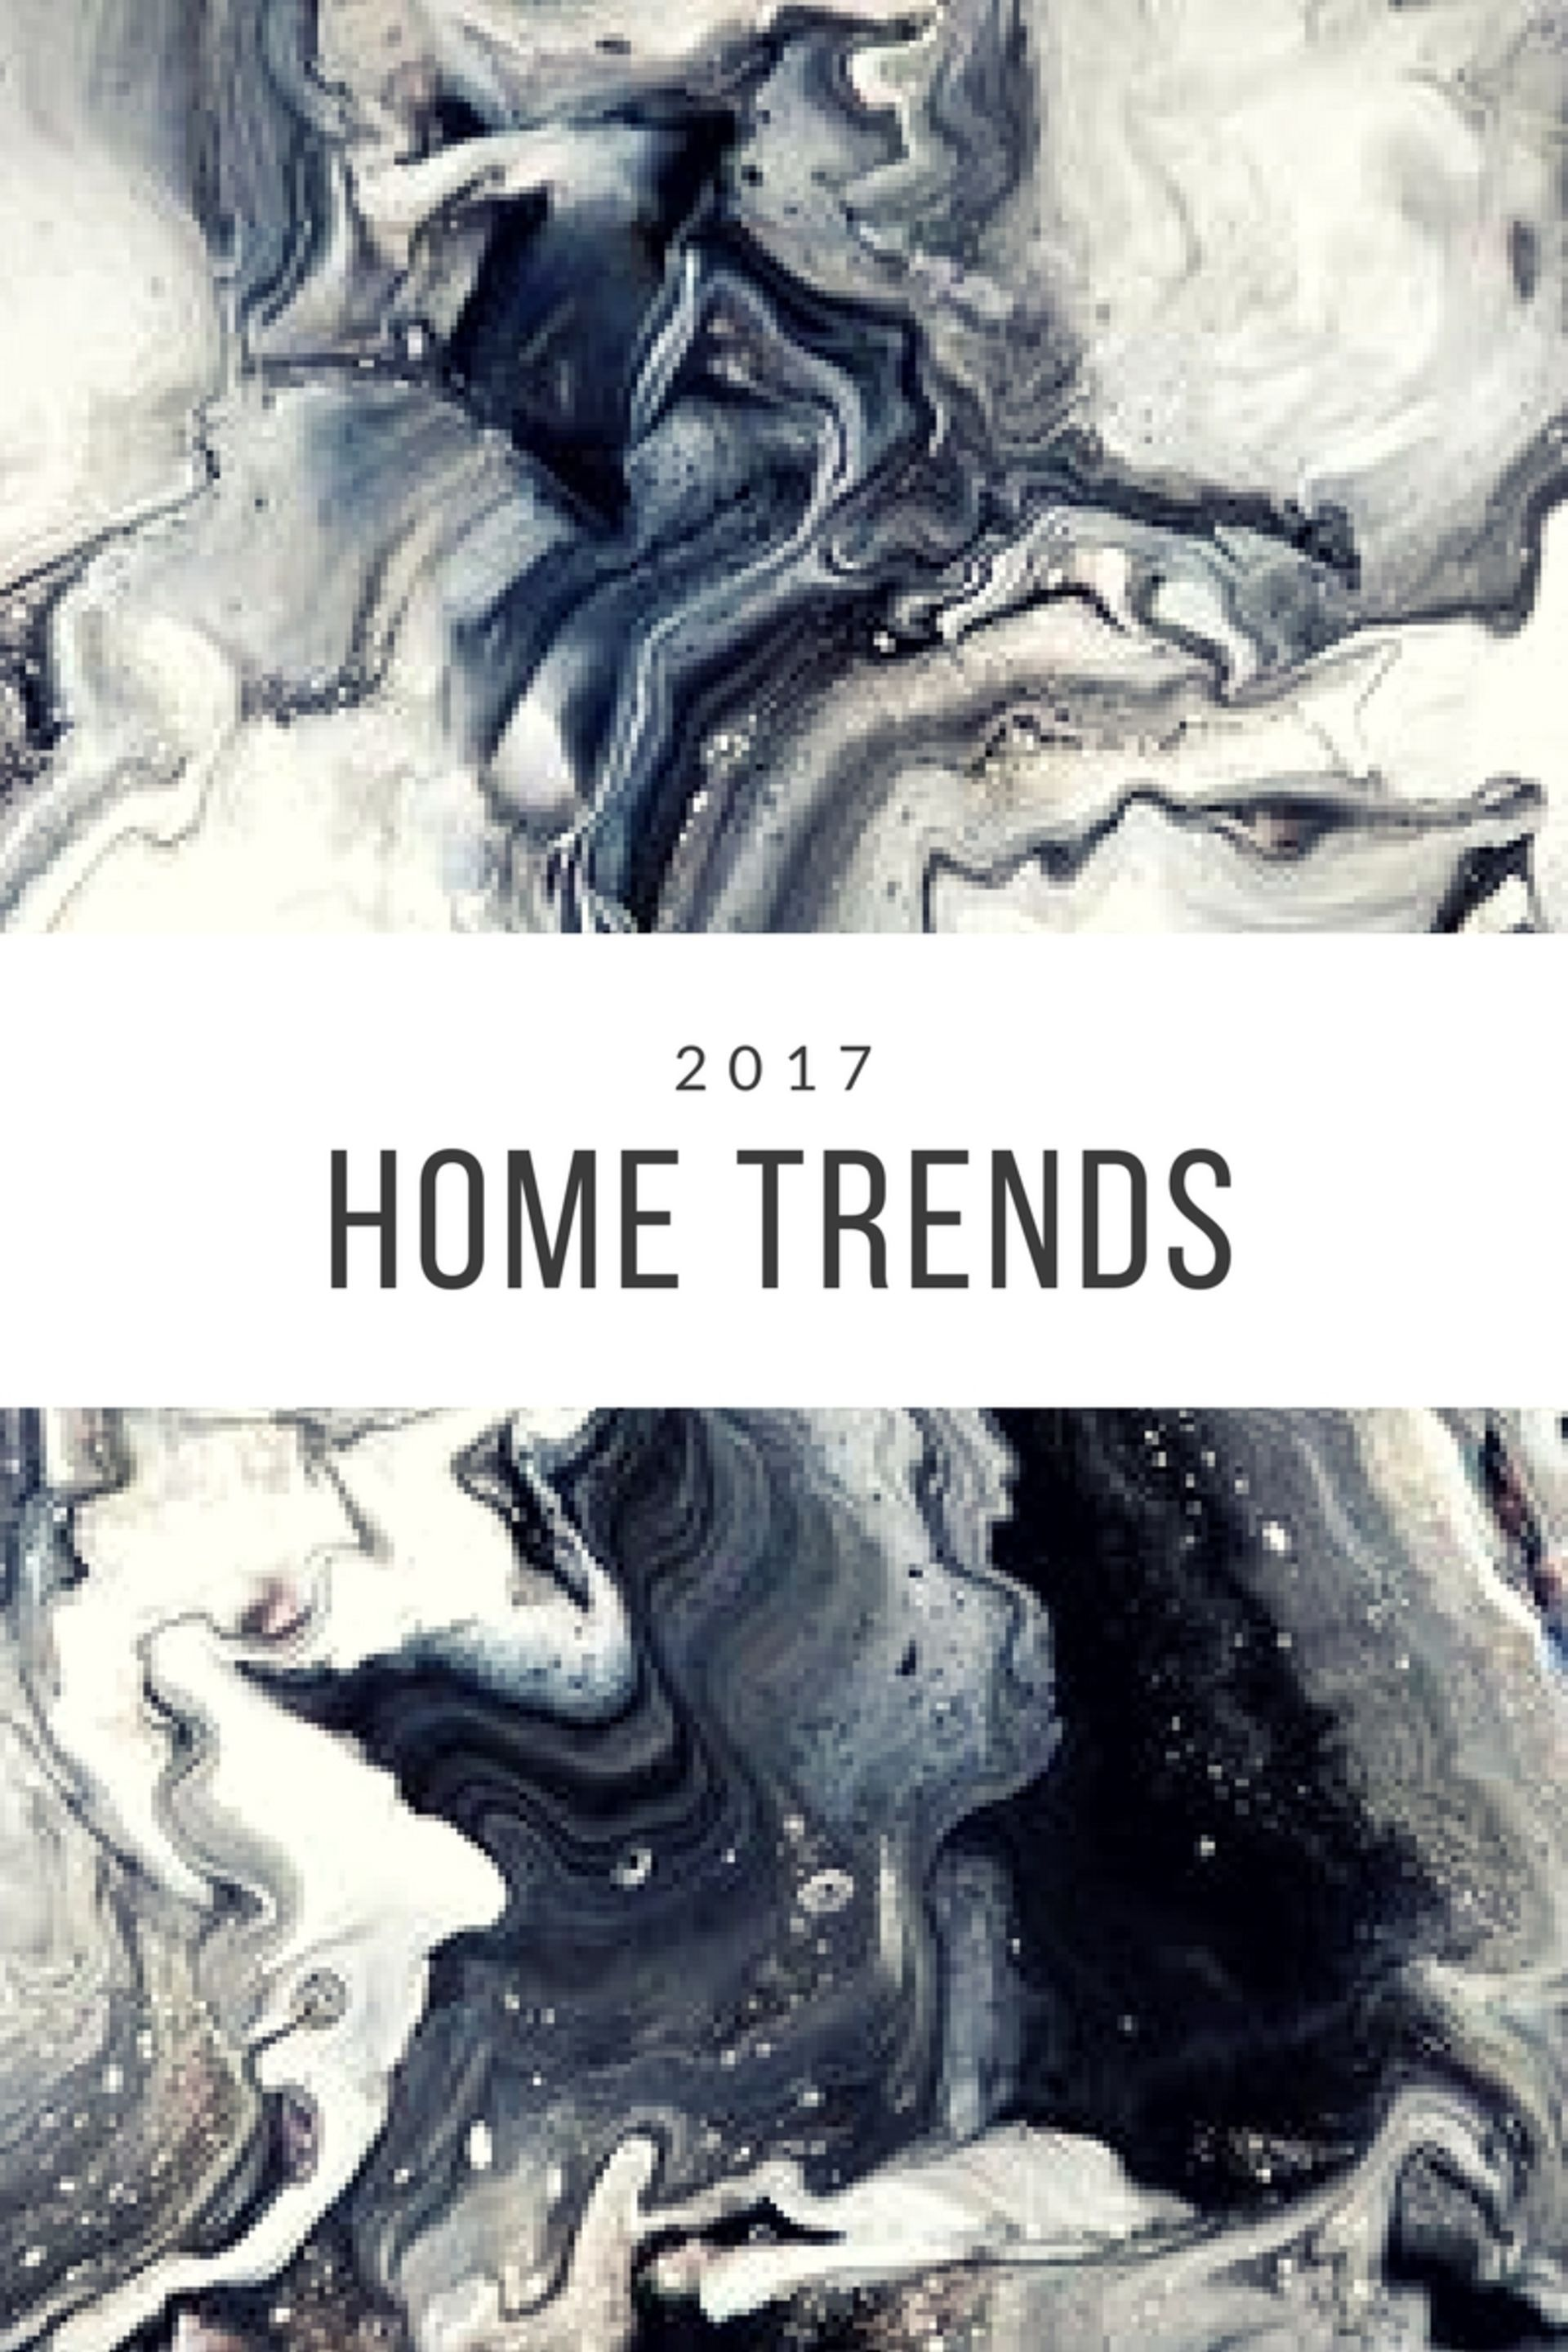 2017 Home Trends We Can't Resist